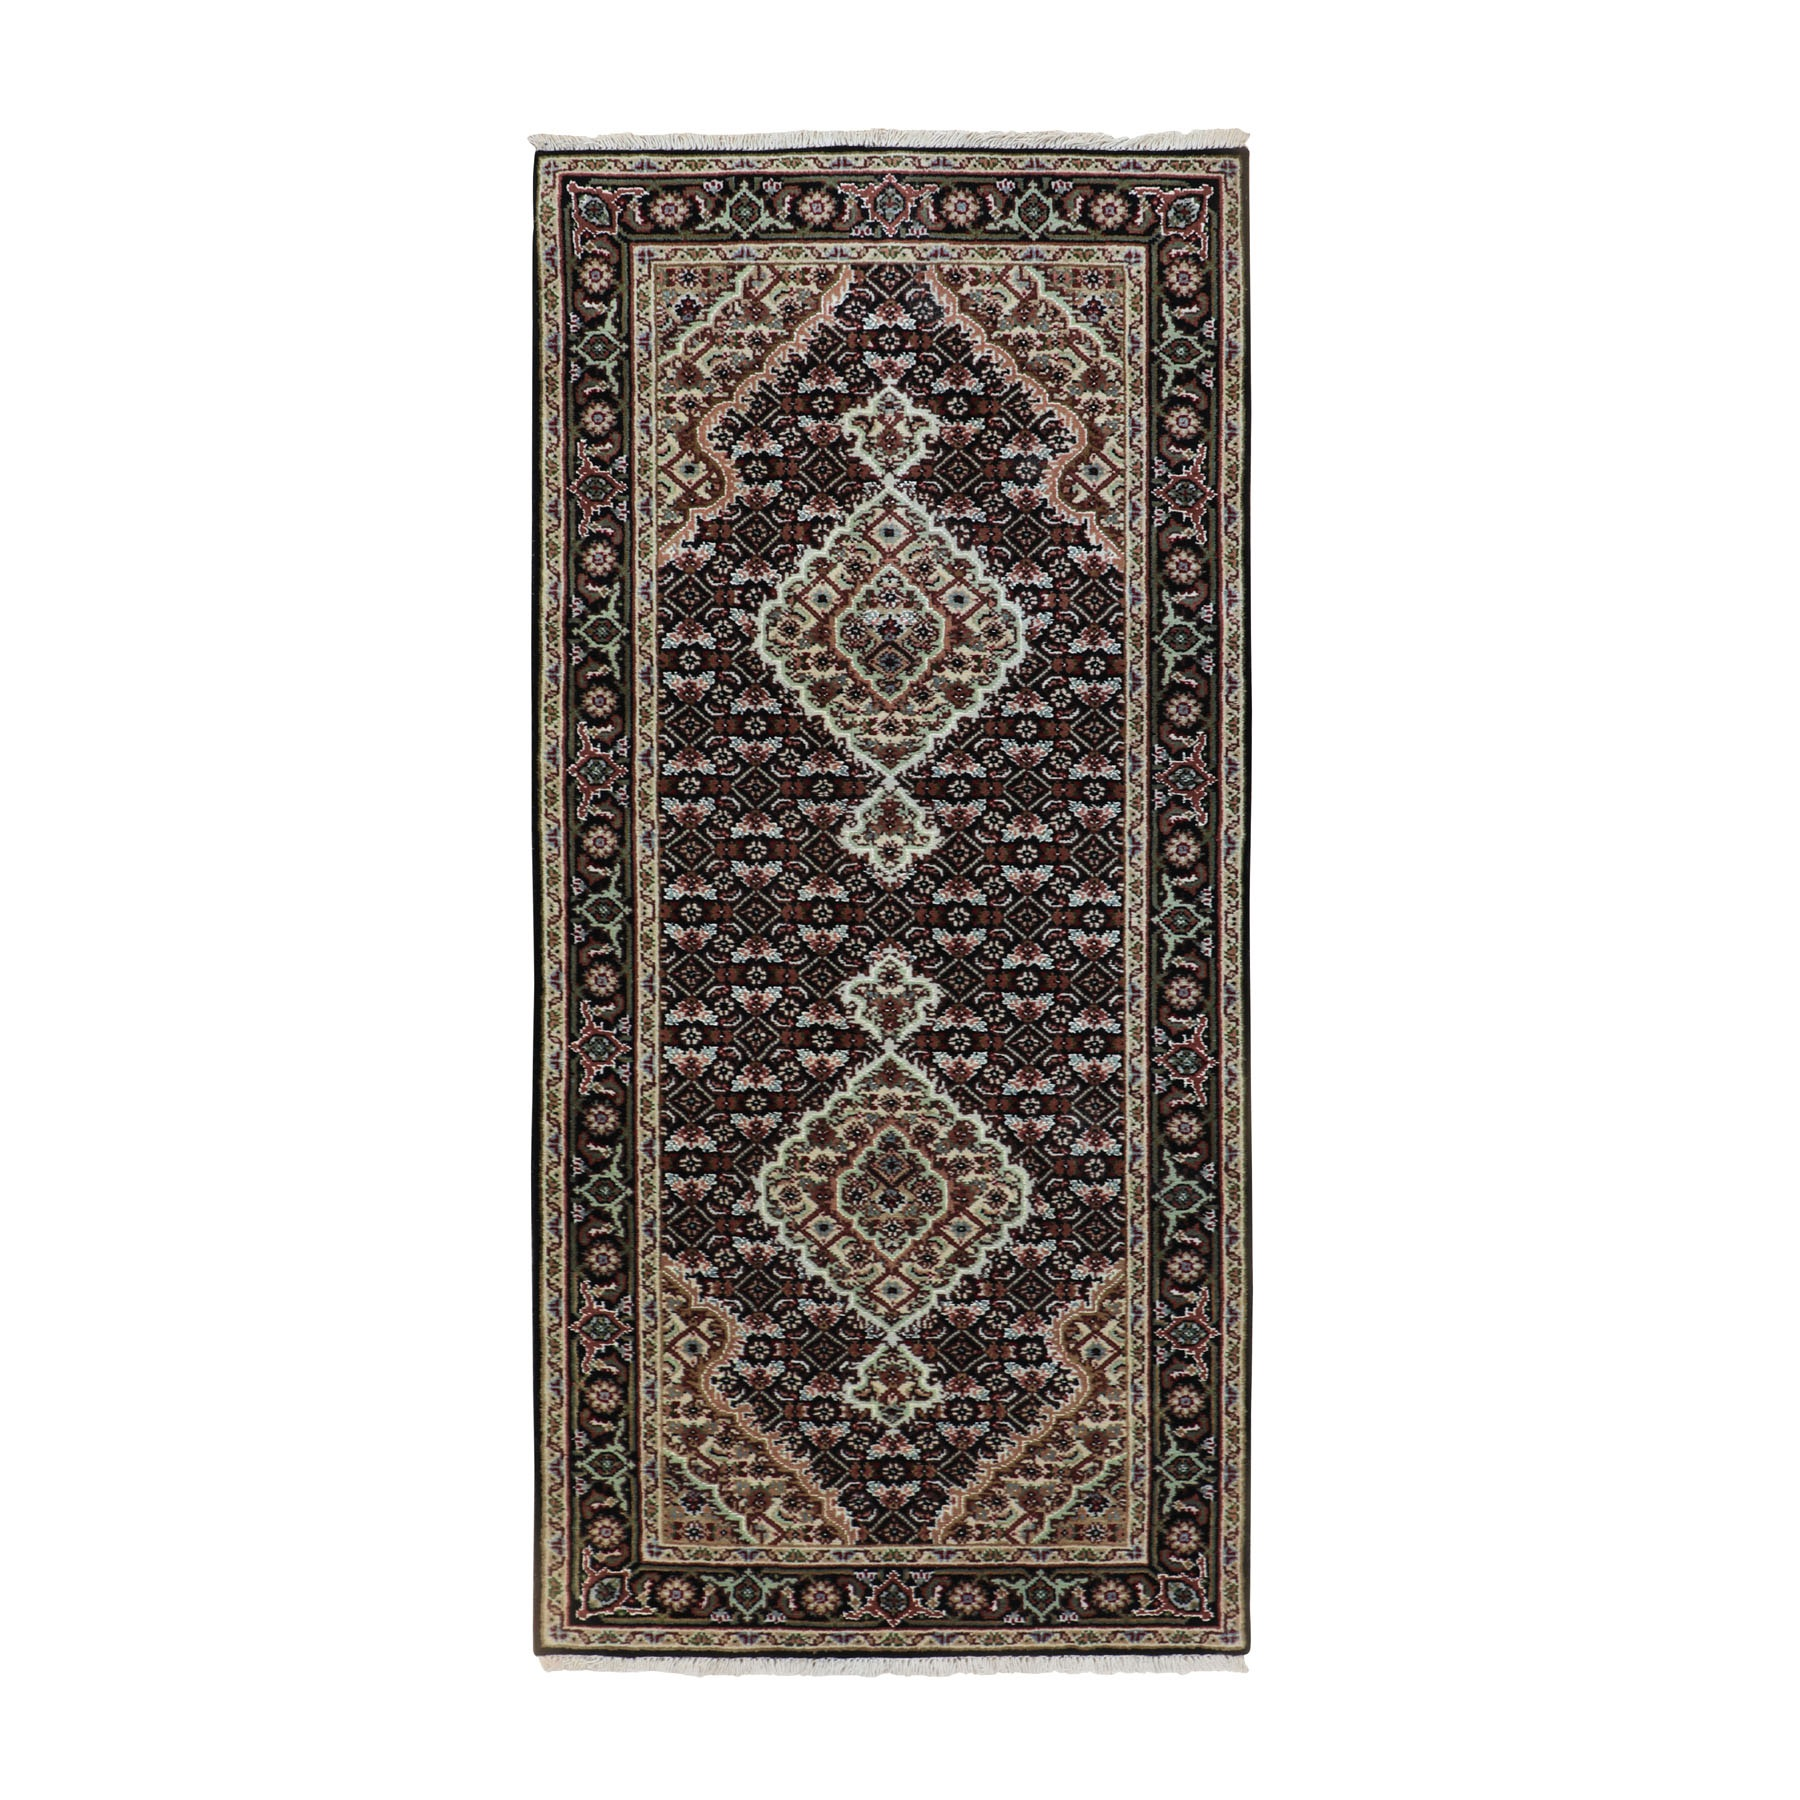 Pirniakan Collection Hand Knotted Black Rug No: 01116612